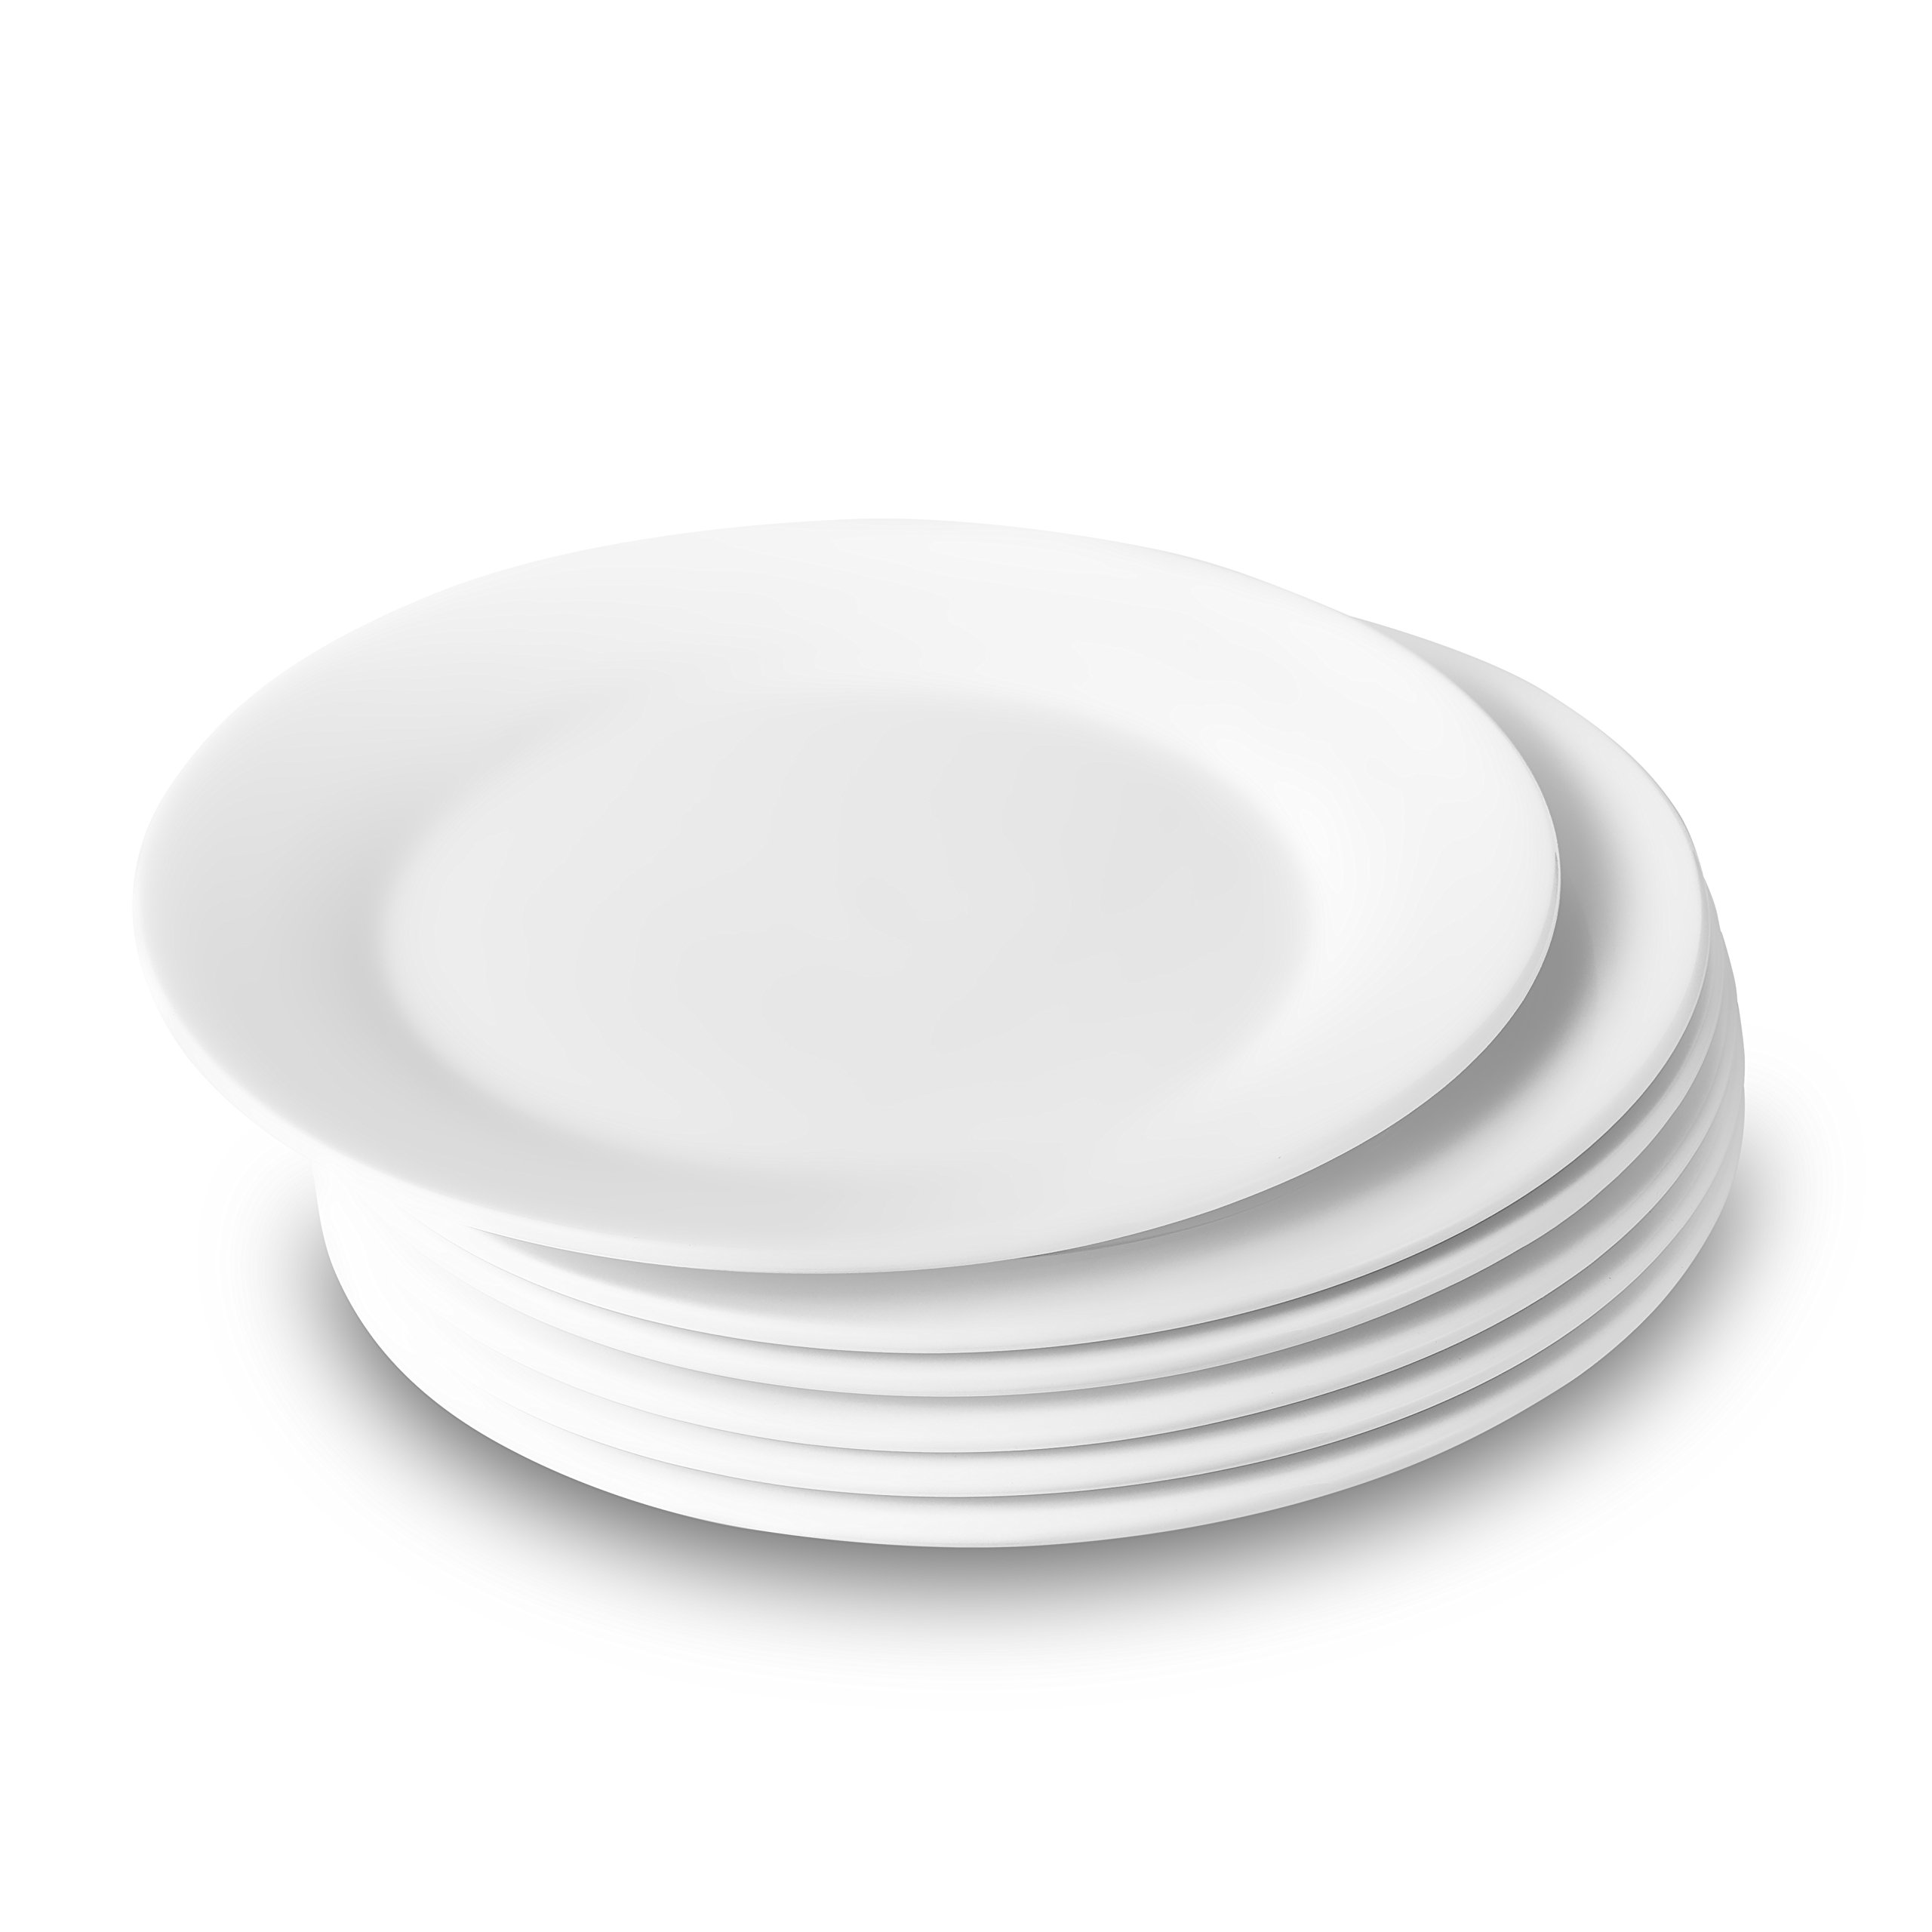 Nucookery 8 Inch White Dinner Plates | Porcelain Dishes | Medium, Microwave-Safe, Dishwasher-Safe 6pc Ceramic Dinnerware Set (8 Inch) by Nucookery (Image #2)